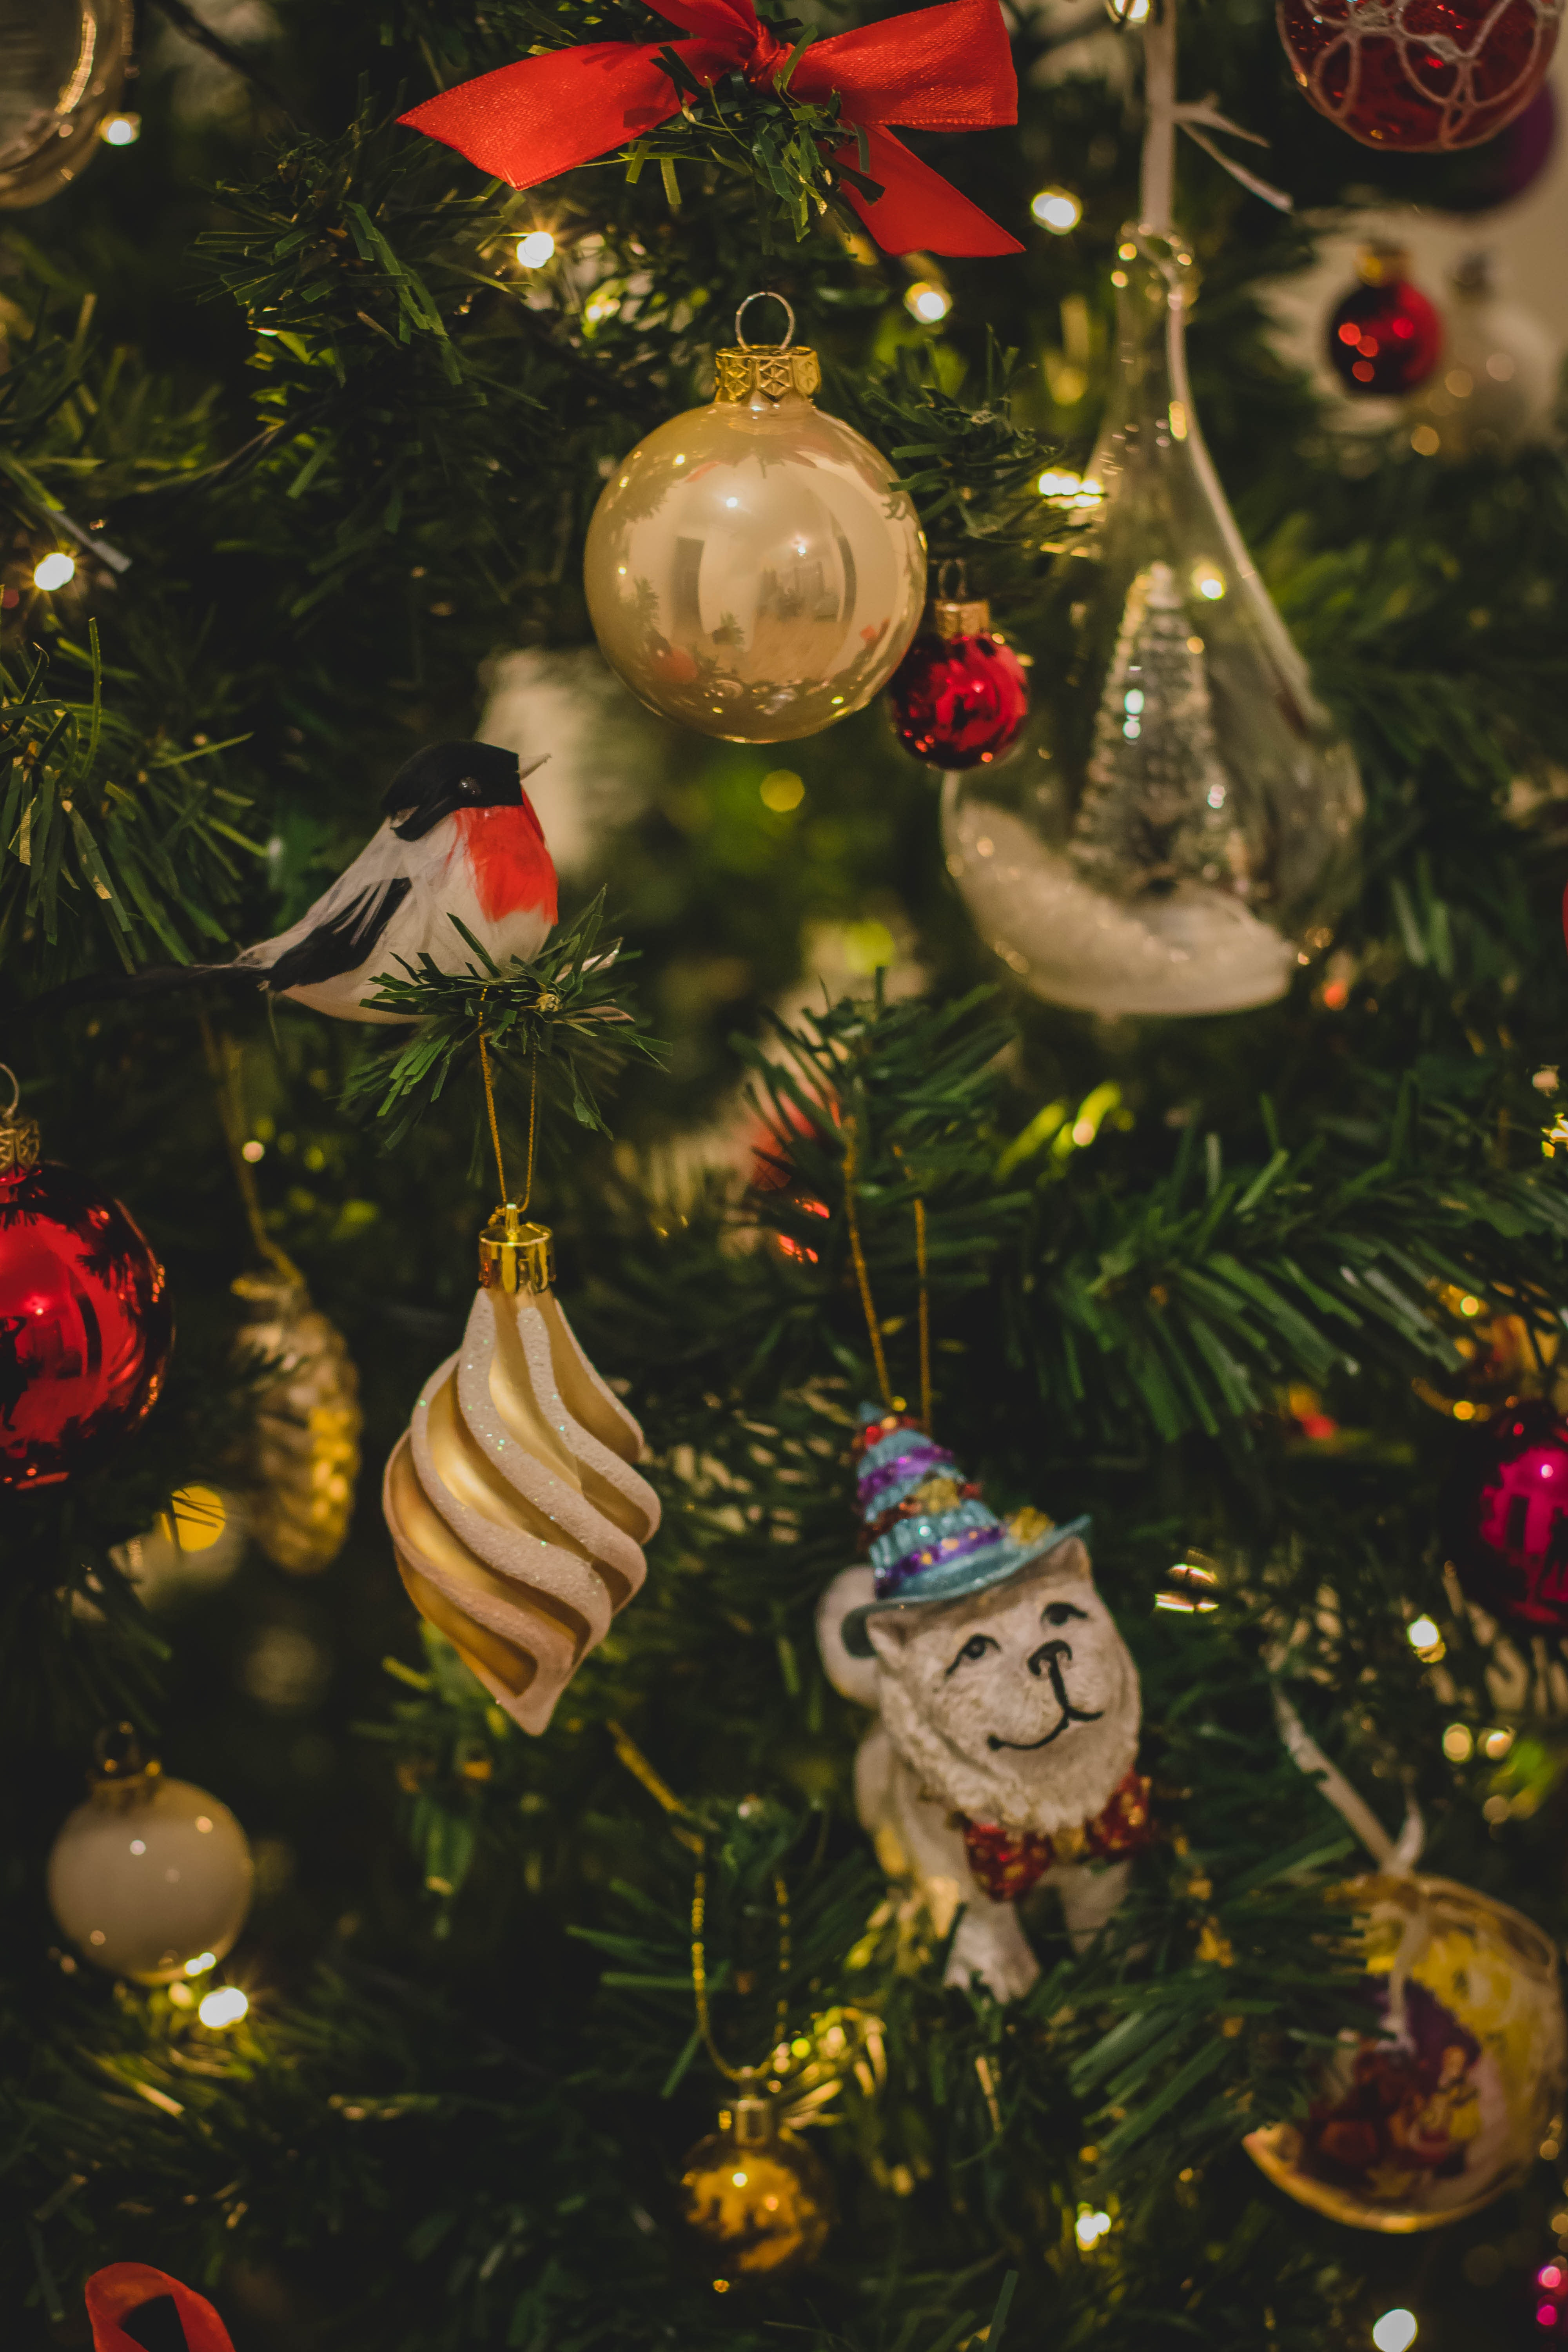 Assorted Ornaments on Christmas Tree, Golden, Tree, Threads, Sphere, HQ Photo